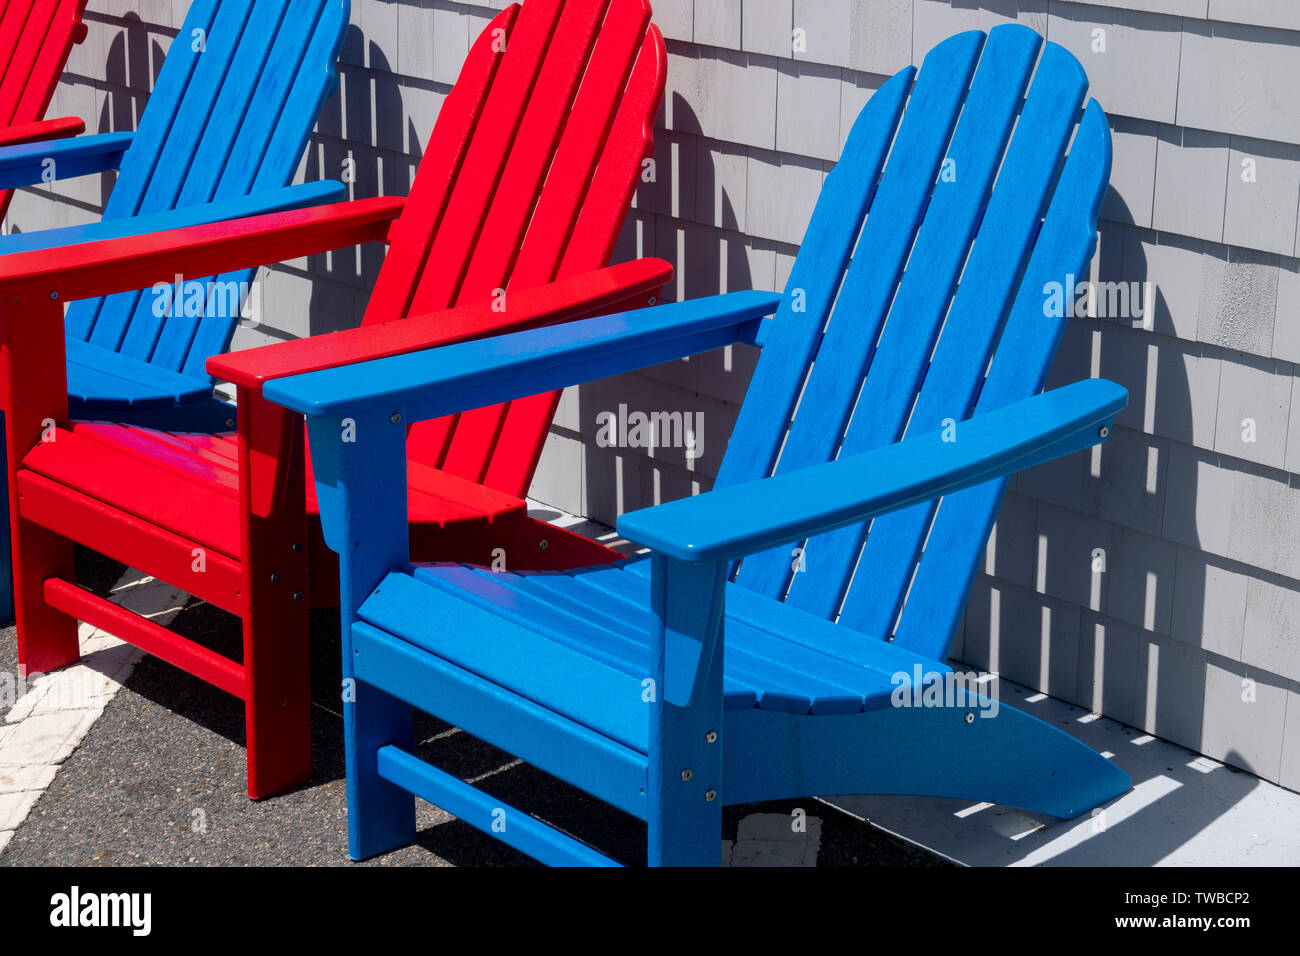 usa-massachusetts-ma-colorful-red-and-blue-adirondack-chairs-made-from-recycled-plastic-TWBCP2.jpg